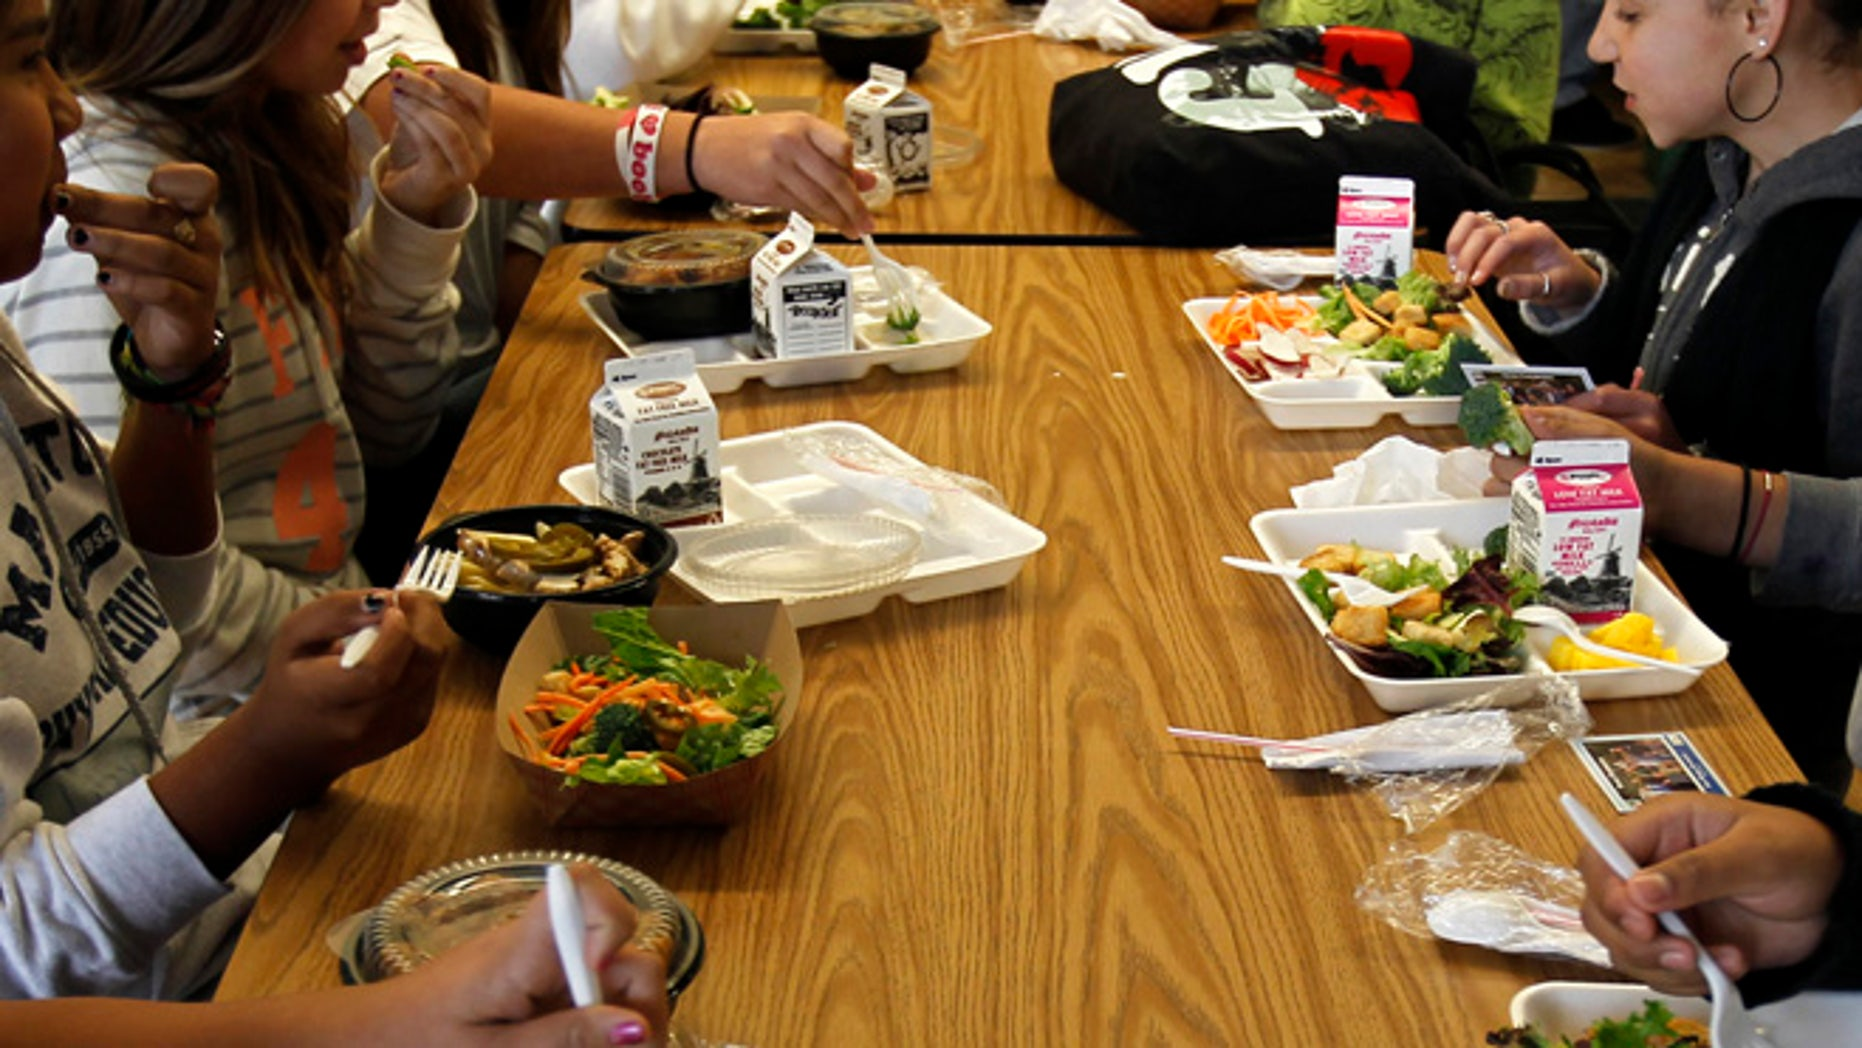 FILE: 2011: Students eating lunch at a Southern California school.